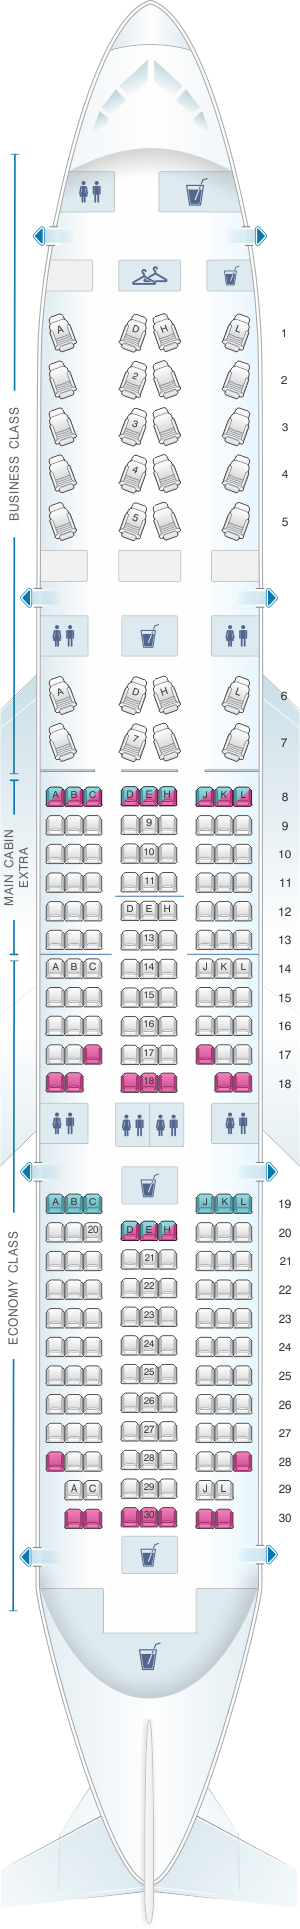 Seat map for American Airlines Boeing B787 8